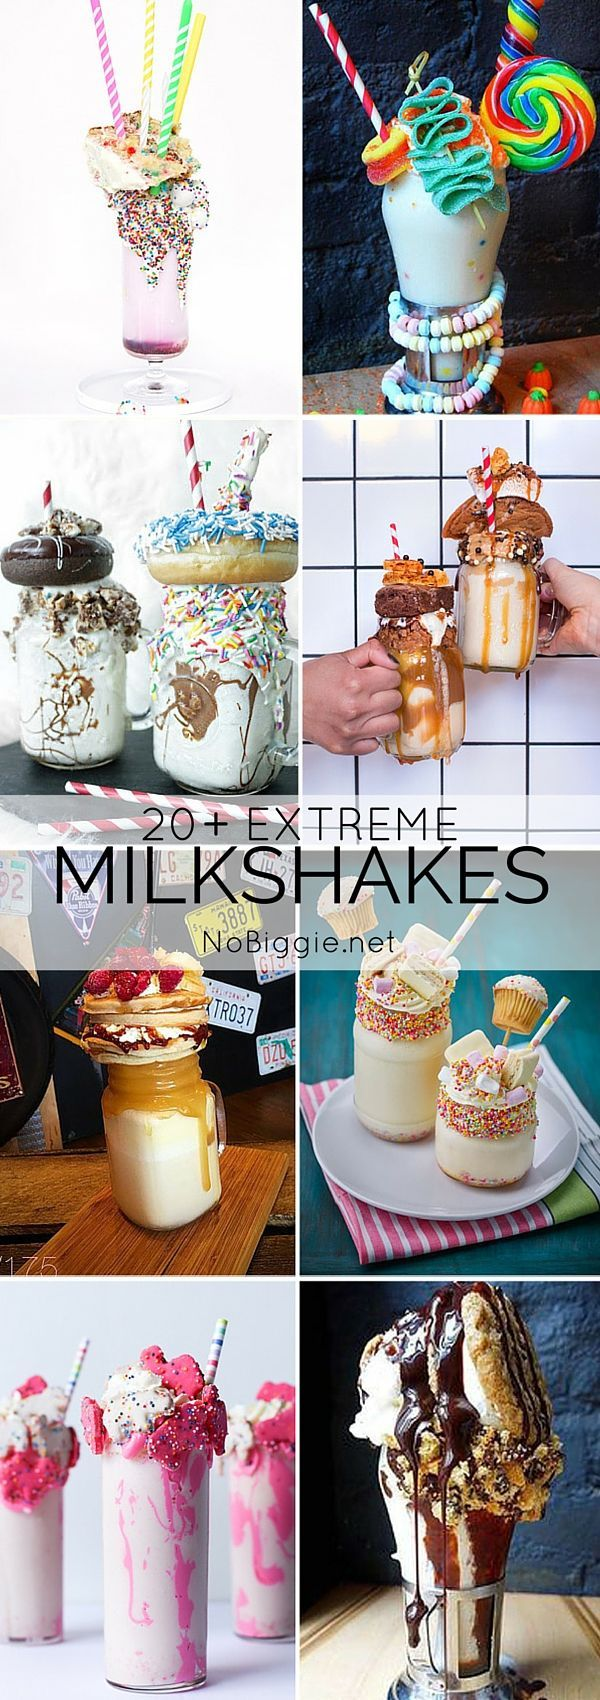 Extreme Milkshakes. Freakshakes. Monster Shakes. Whatever you want to call them, I'm sure we can all agree they're totally over the top and you'd love to try one. It's a trend that started in Australi !